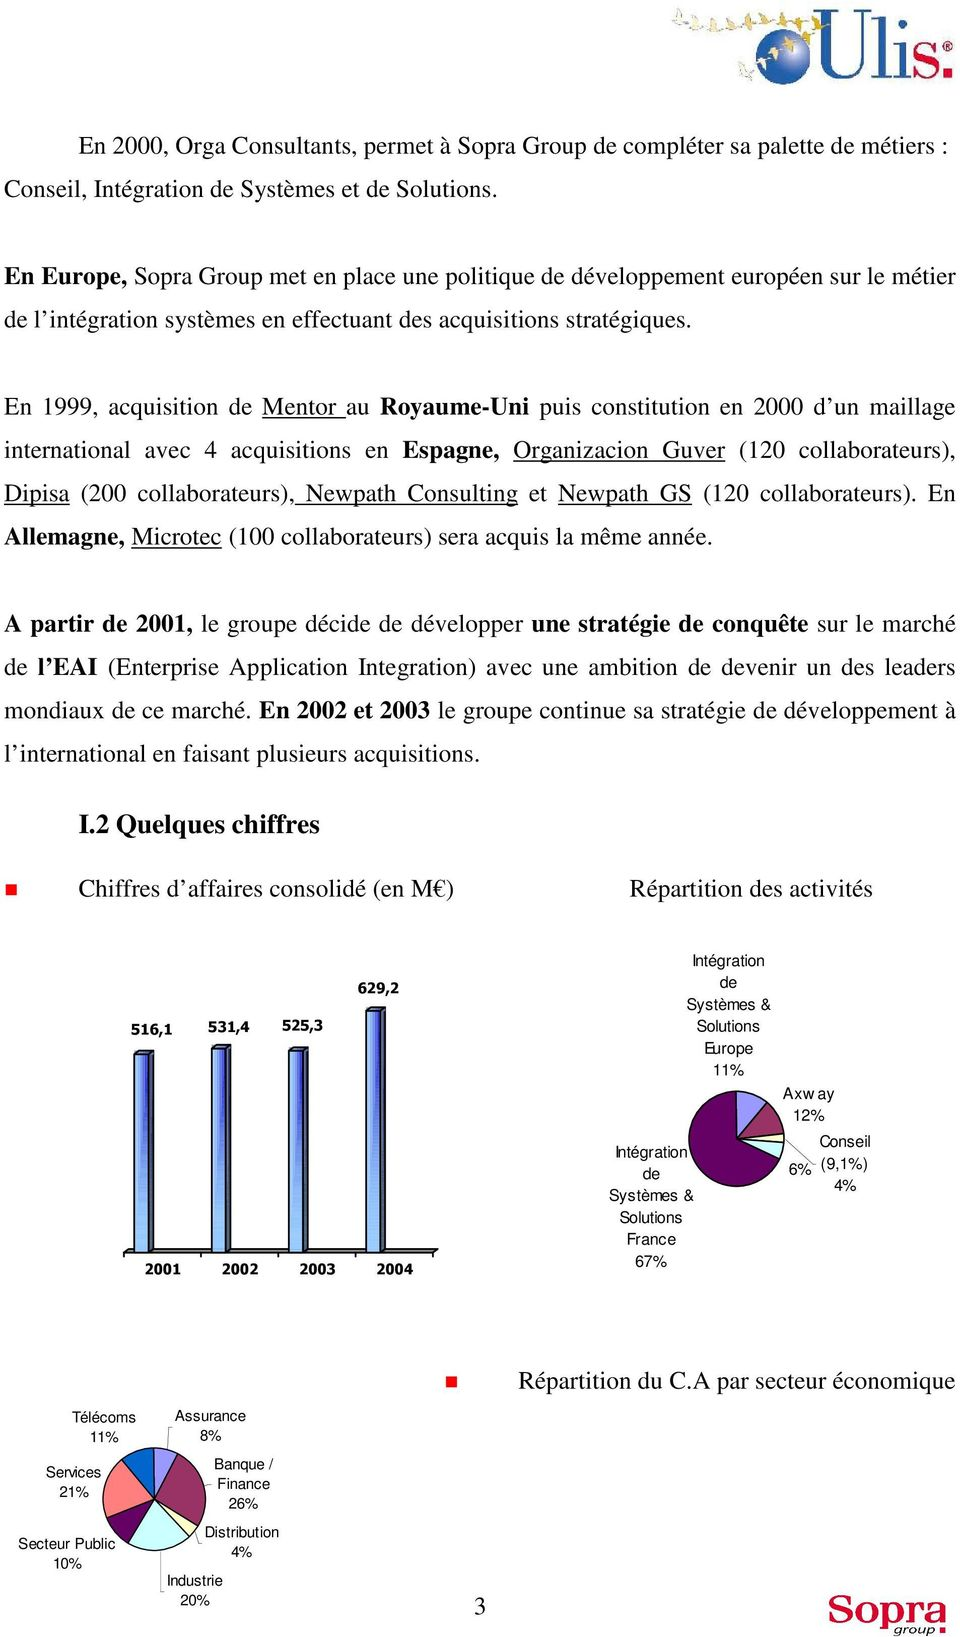 En 1999, acquisition de Mentor au Royaume-Uni puis constitution en 2000 d un maillage international avec 4 acquisitions en Espagne, Organizacion Guver (120 collaborateurs), Dipisa (200